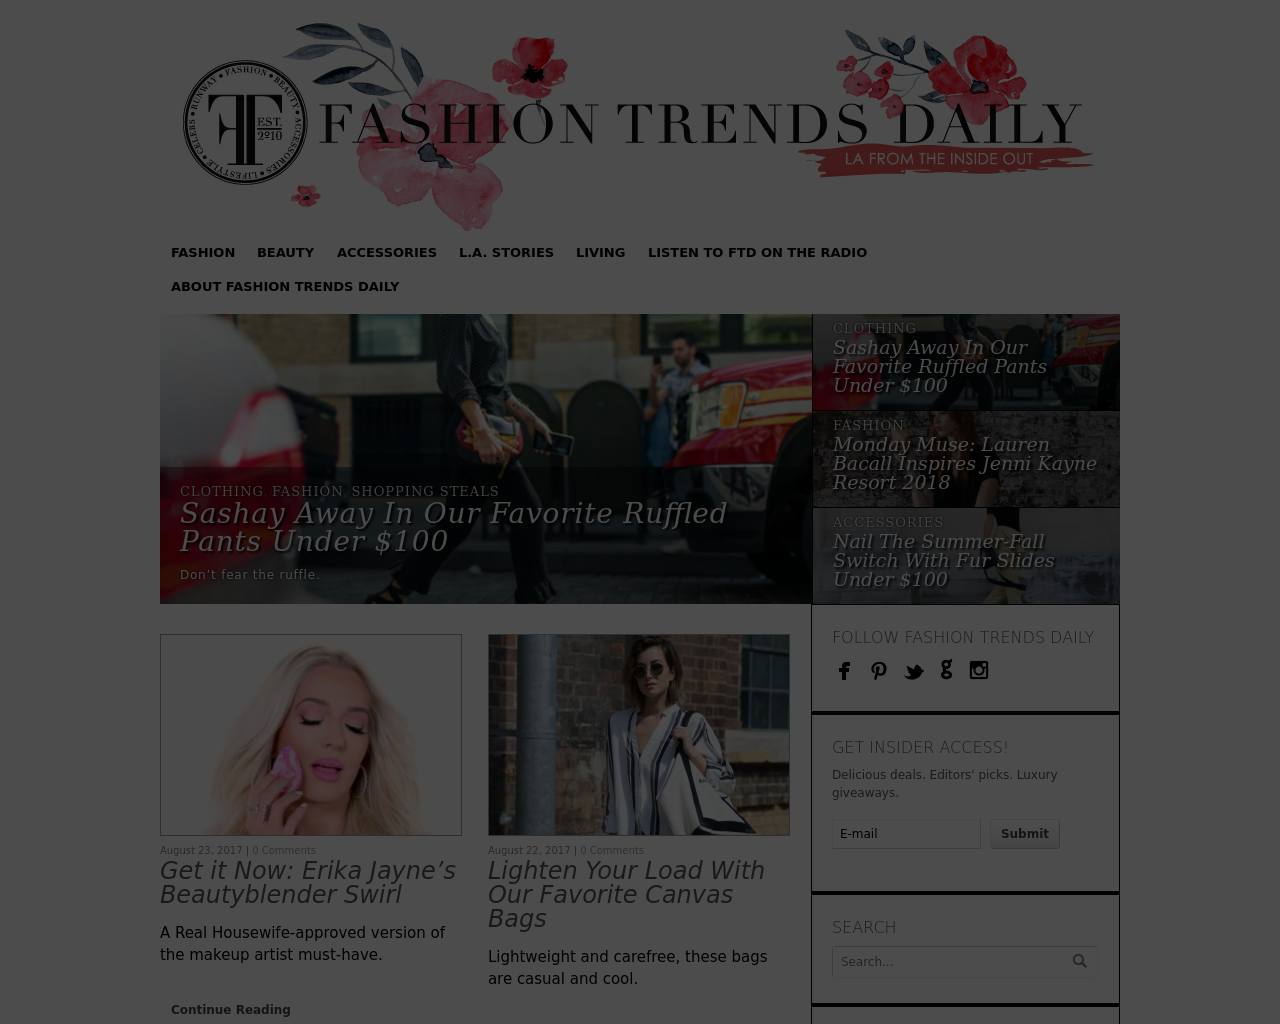 Fashion-Trends-Daily-Advertising-Reviews-Pricing